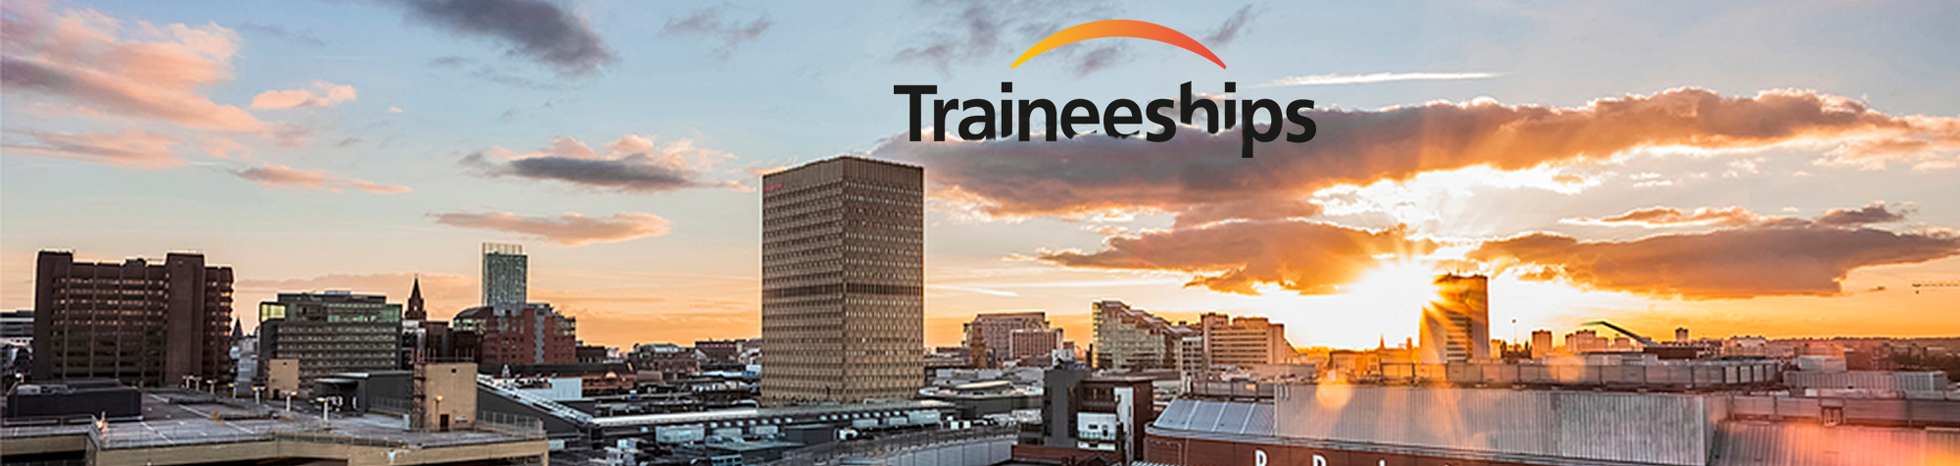 Manchester Skyline Traineeships Back2Work Complete Training